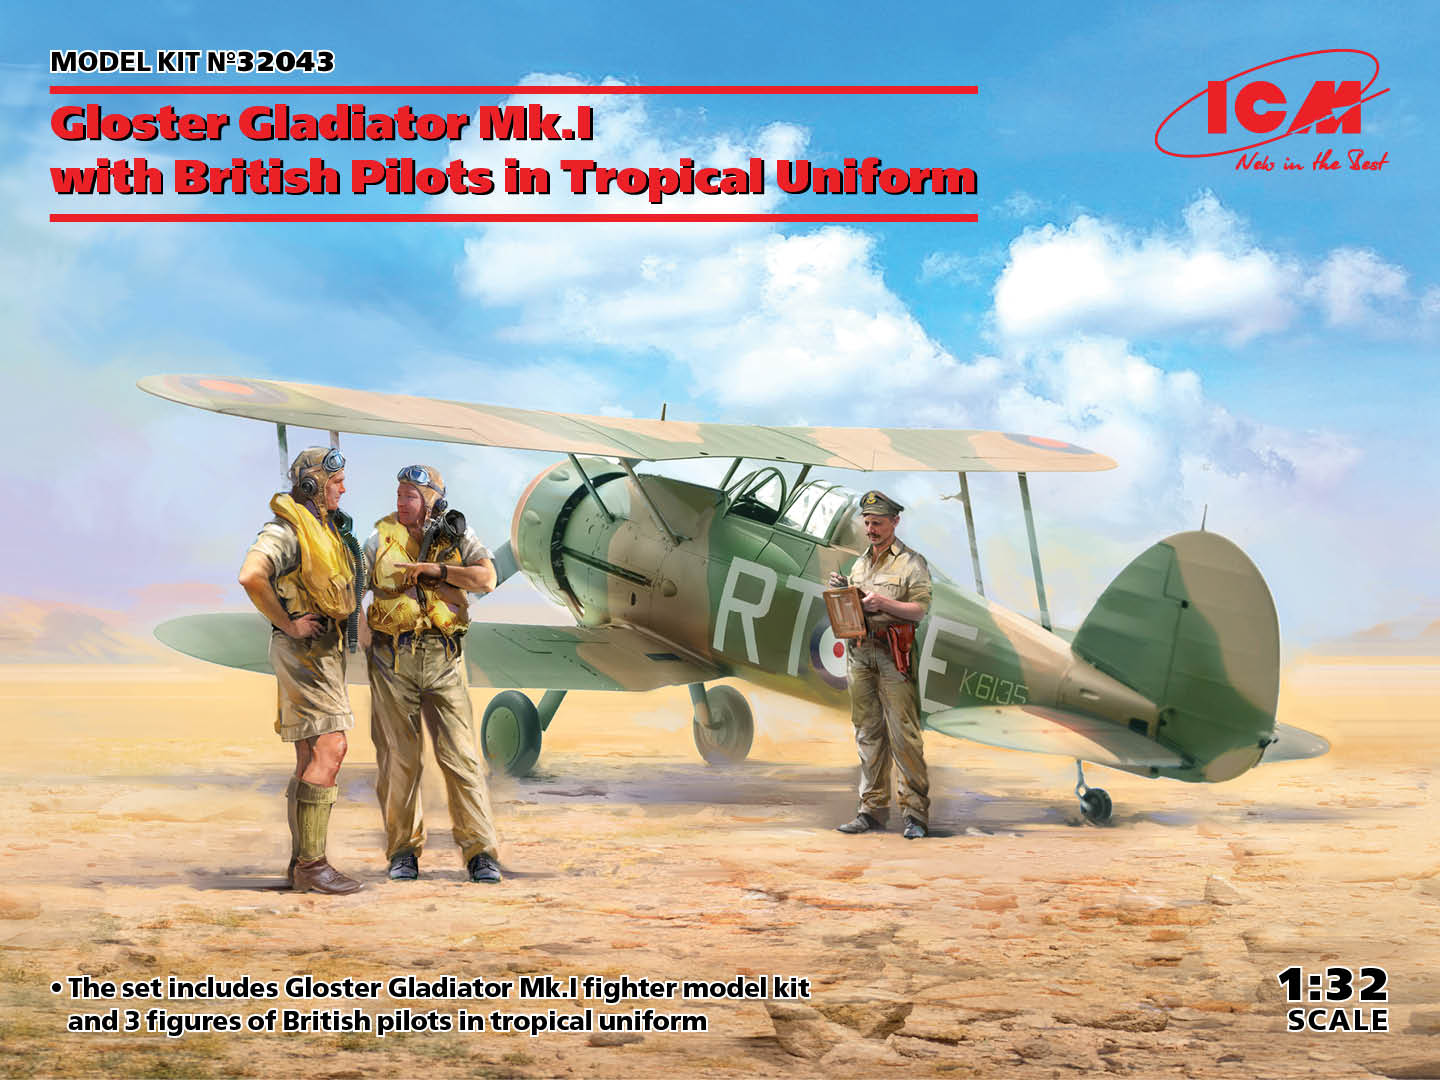 ICM 1/32 Gloster Gladiator Mk.I with British Pilots in Tropical Uniform - zvìtšit obrázek